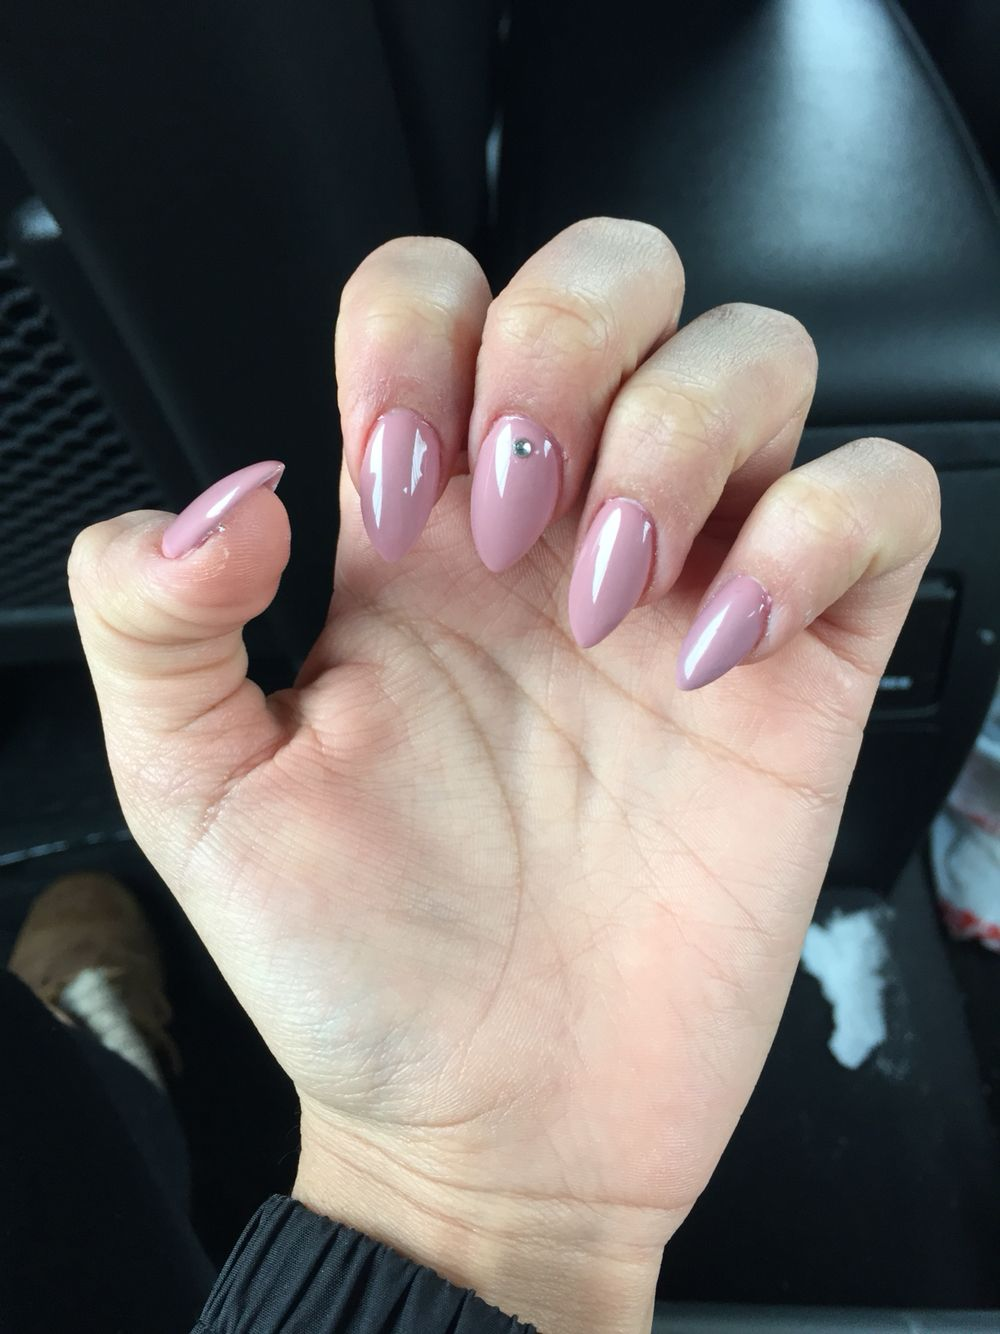 Nude nails with a stud #nails #stiletto #nude